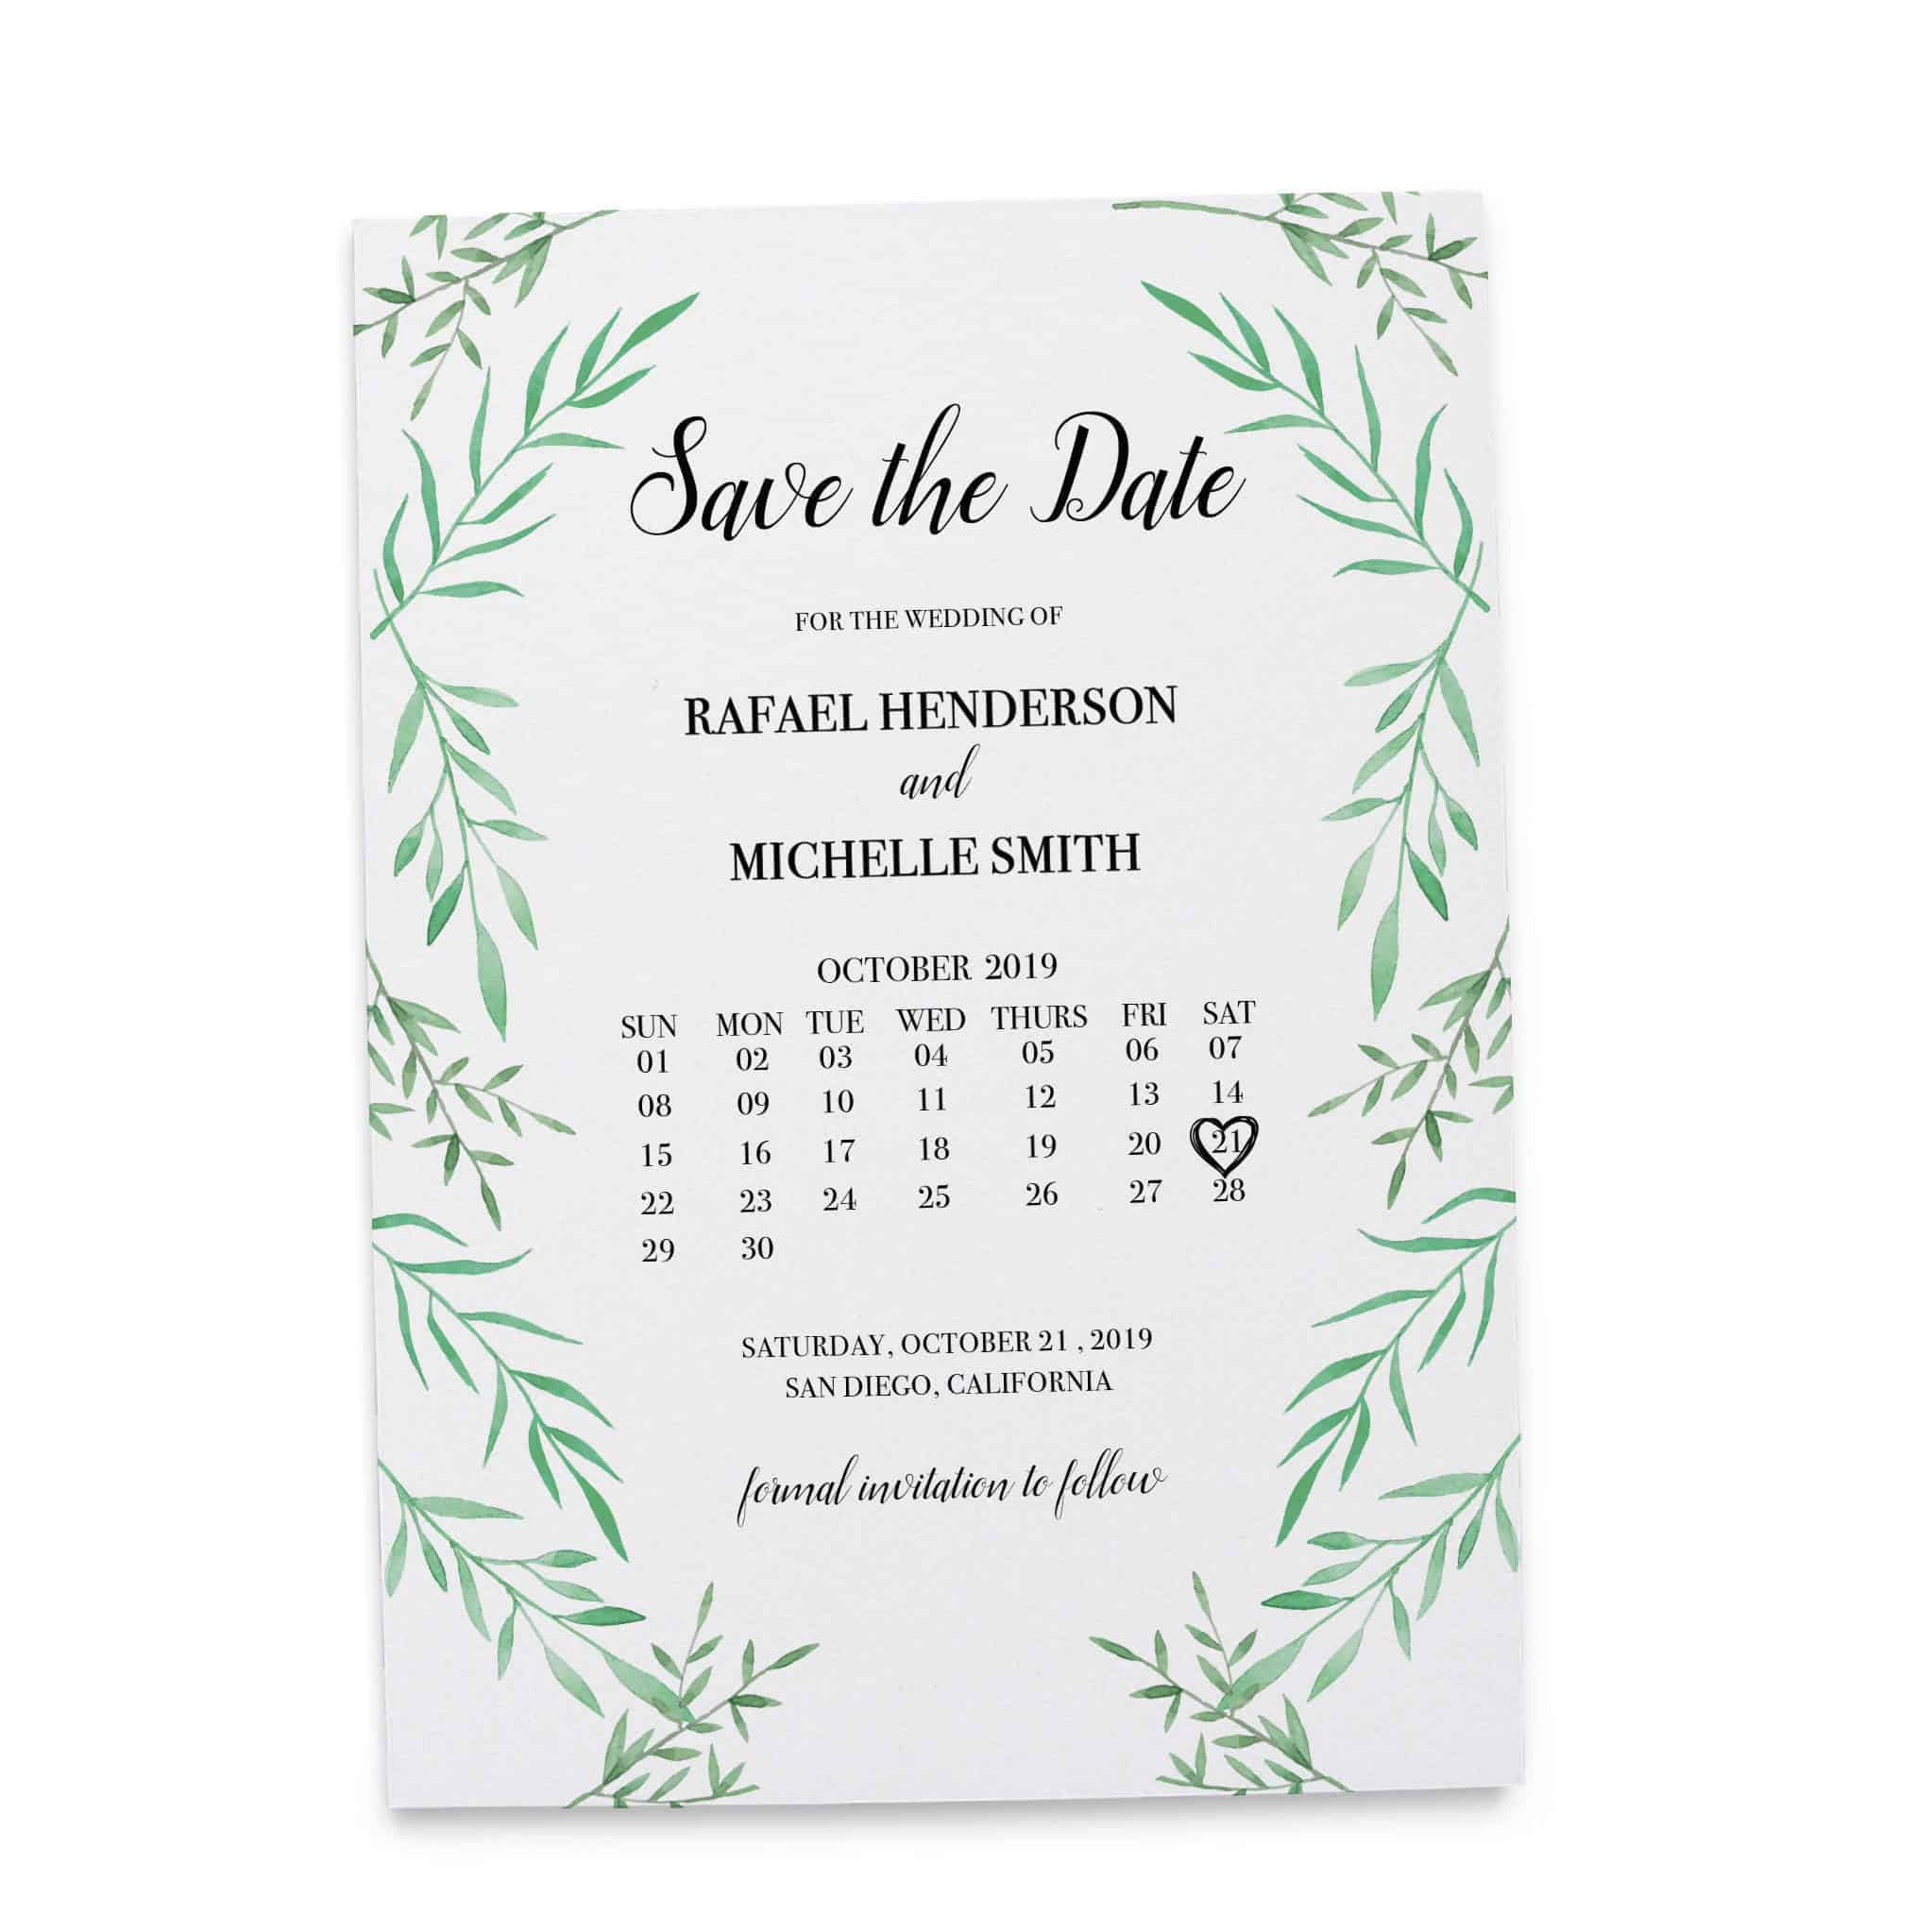 Save the Date Cards, Wedding Save the Date Cards, Green & Leafy Cards